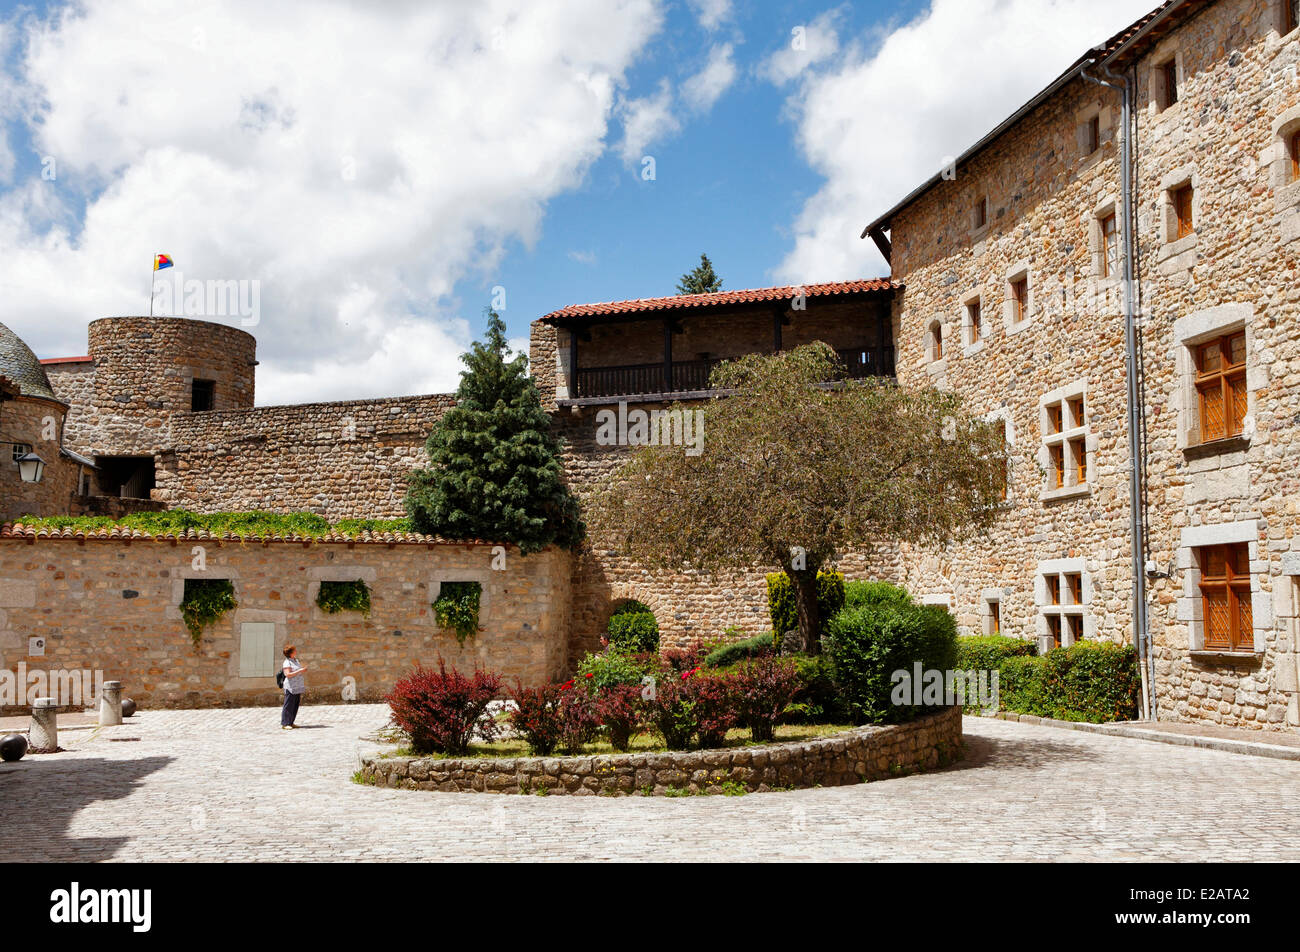 France, Lozere, Le Malzieu Ville, the courtyard of the Convent of the Ursuline - Stock Image